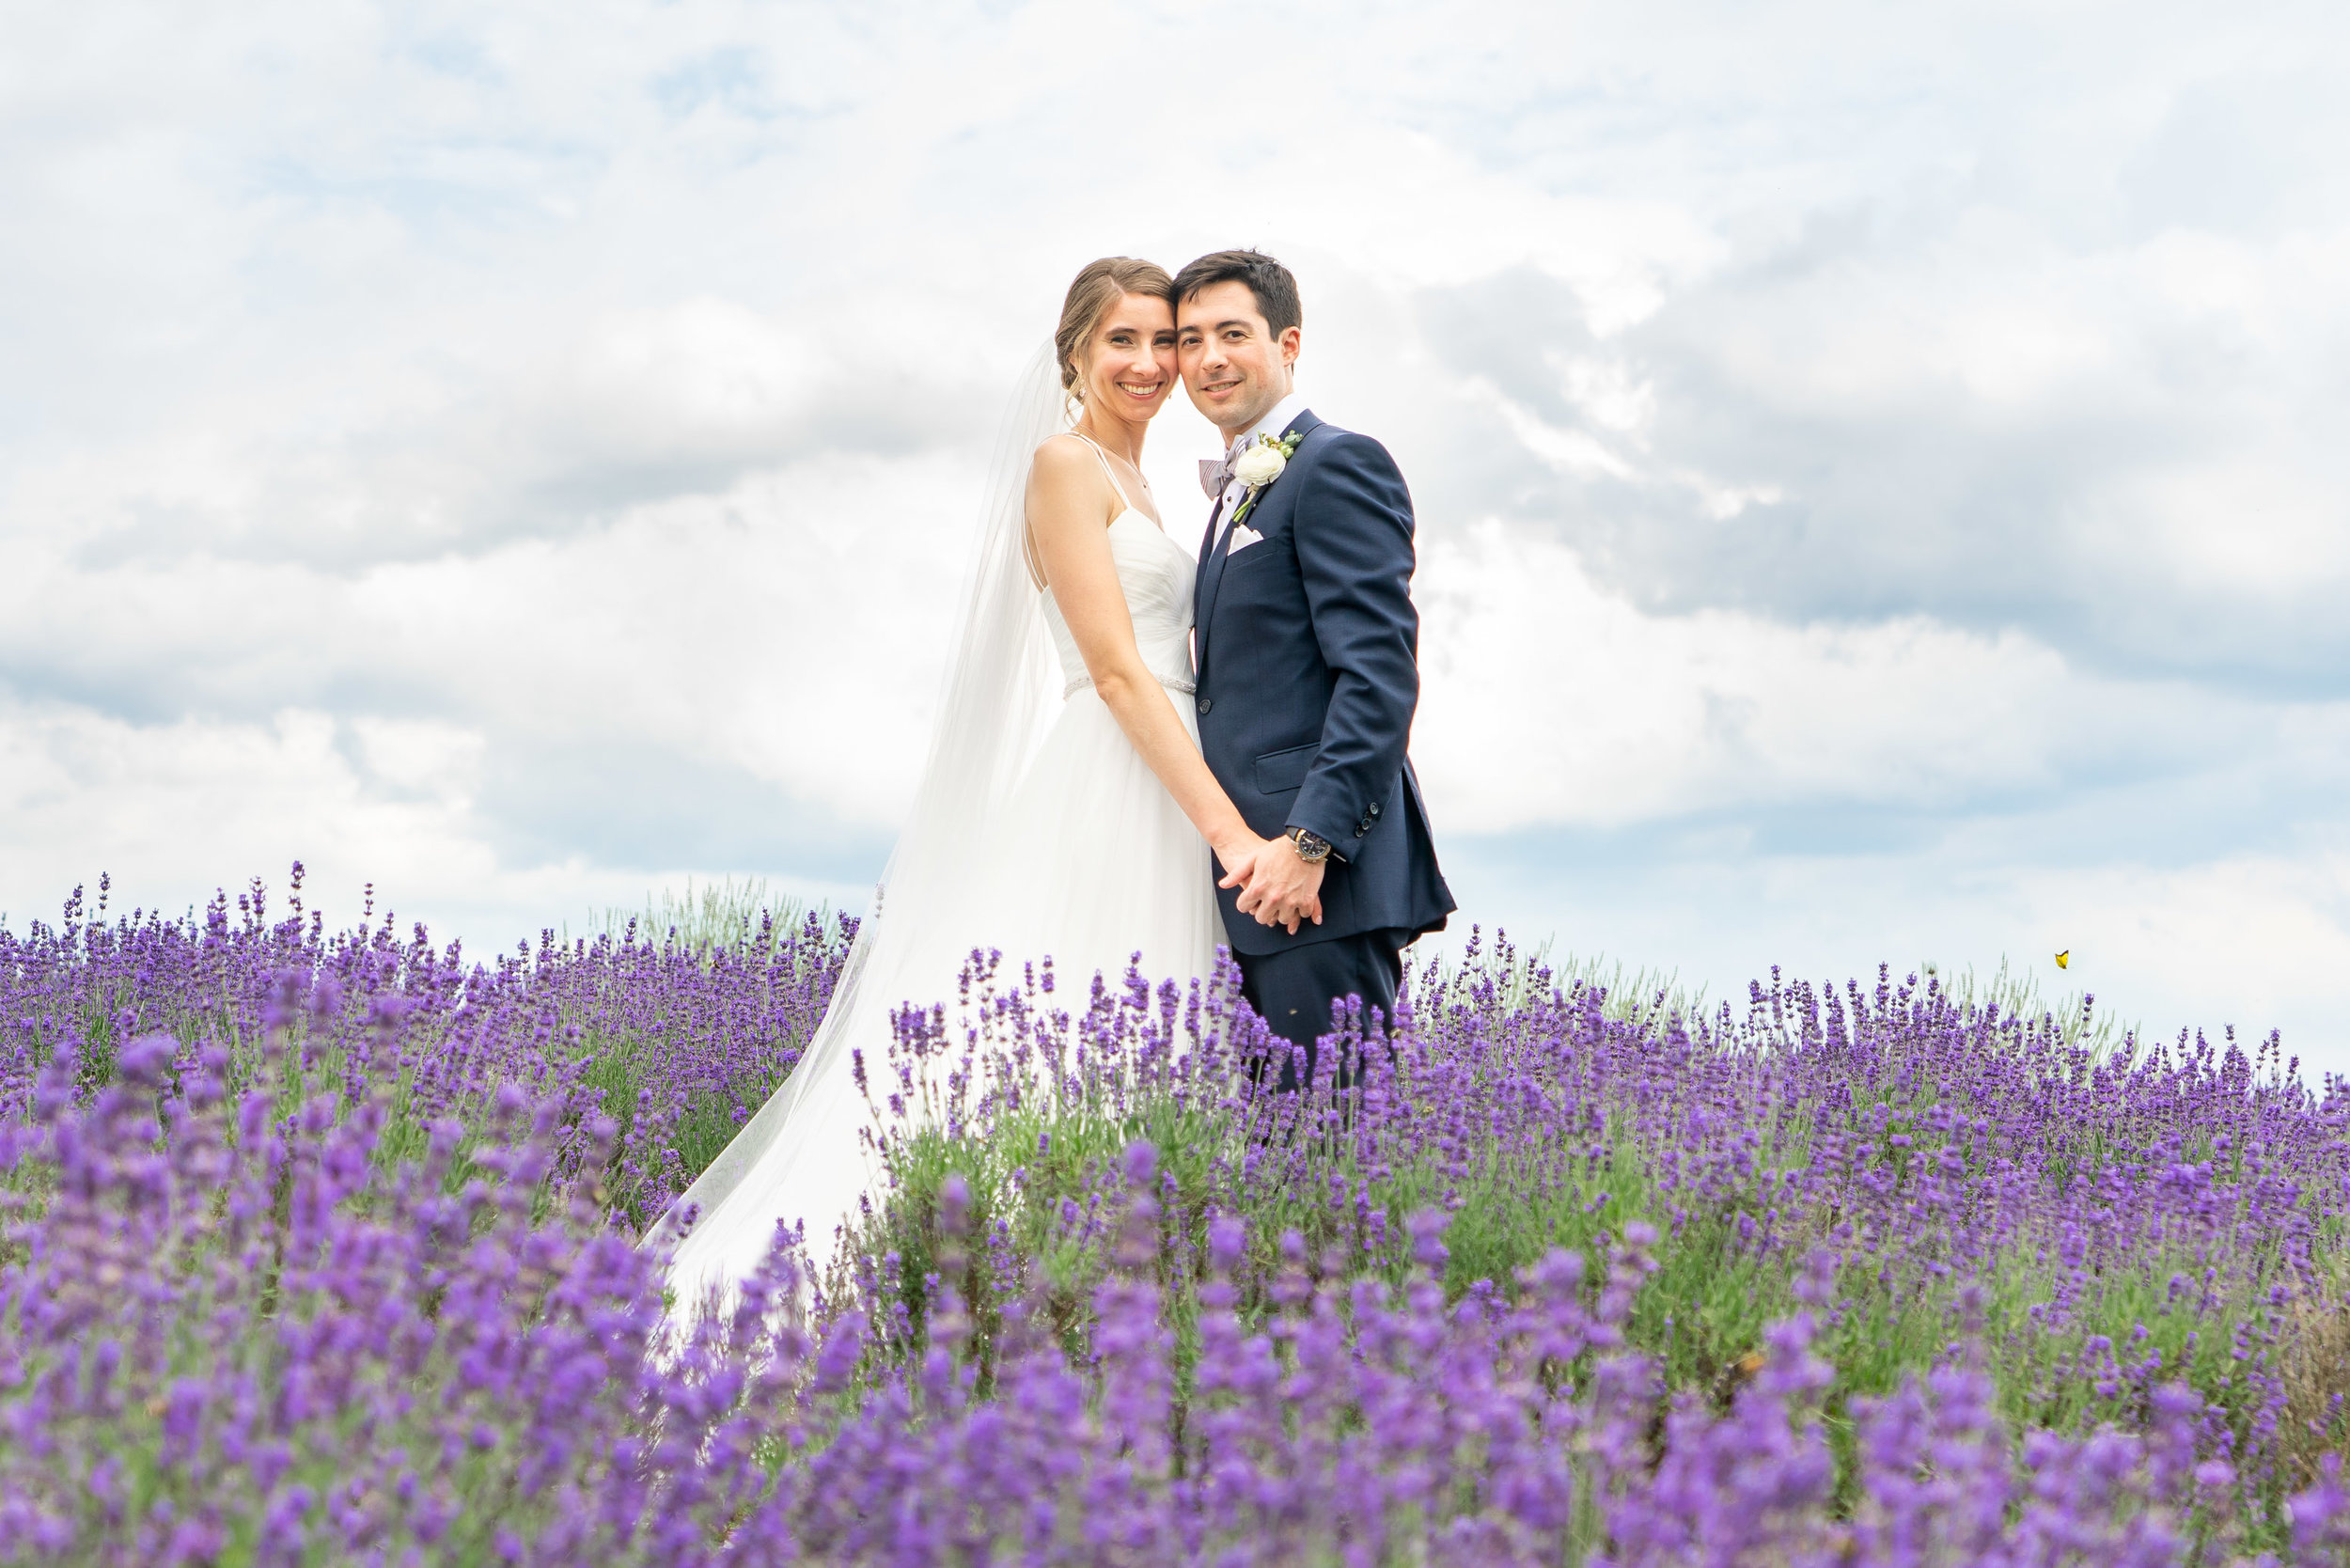 Bride and groom posing in lavender field at Springfield Manor Winery and Distillery